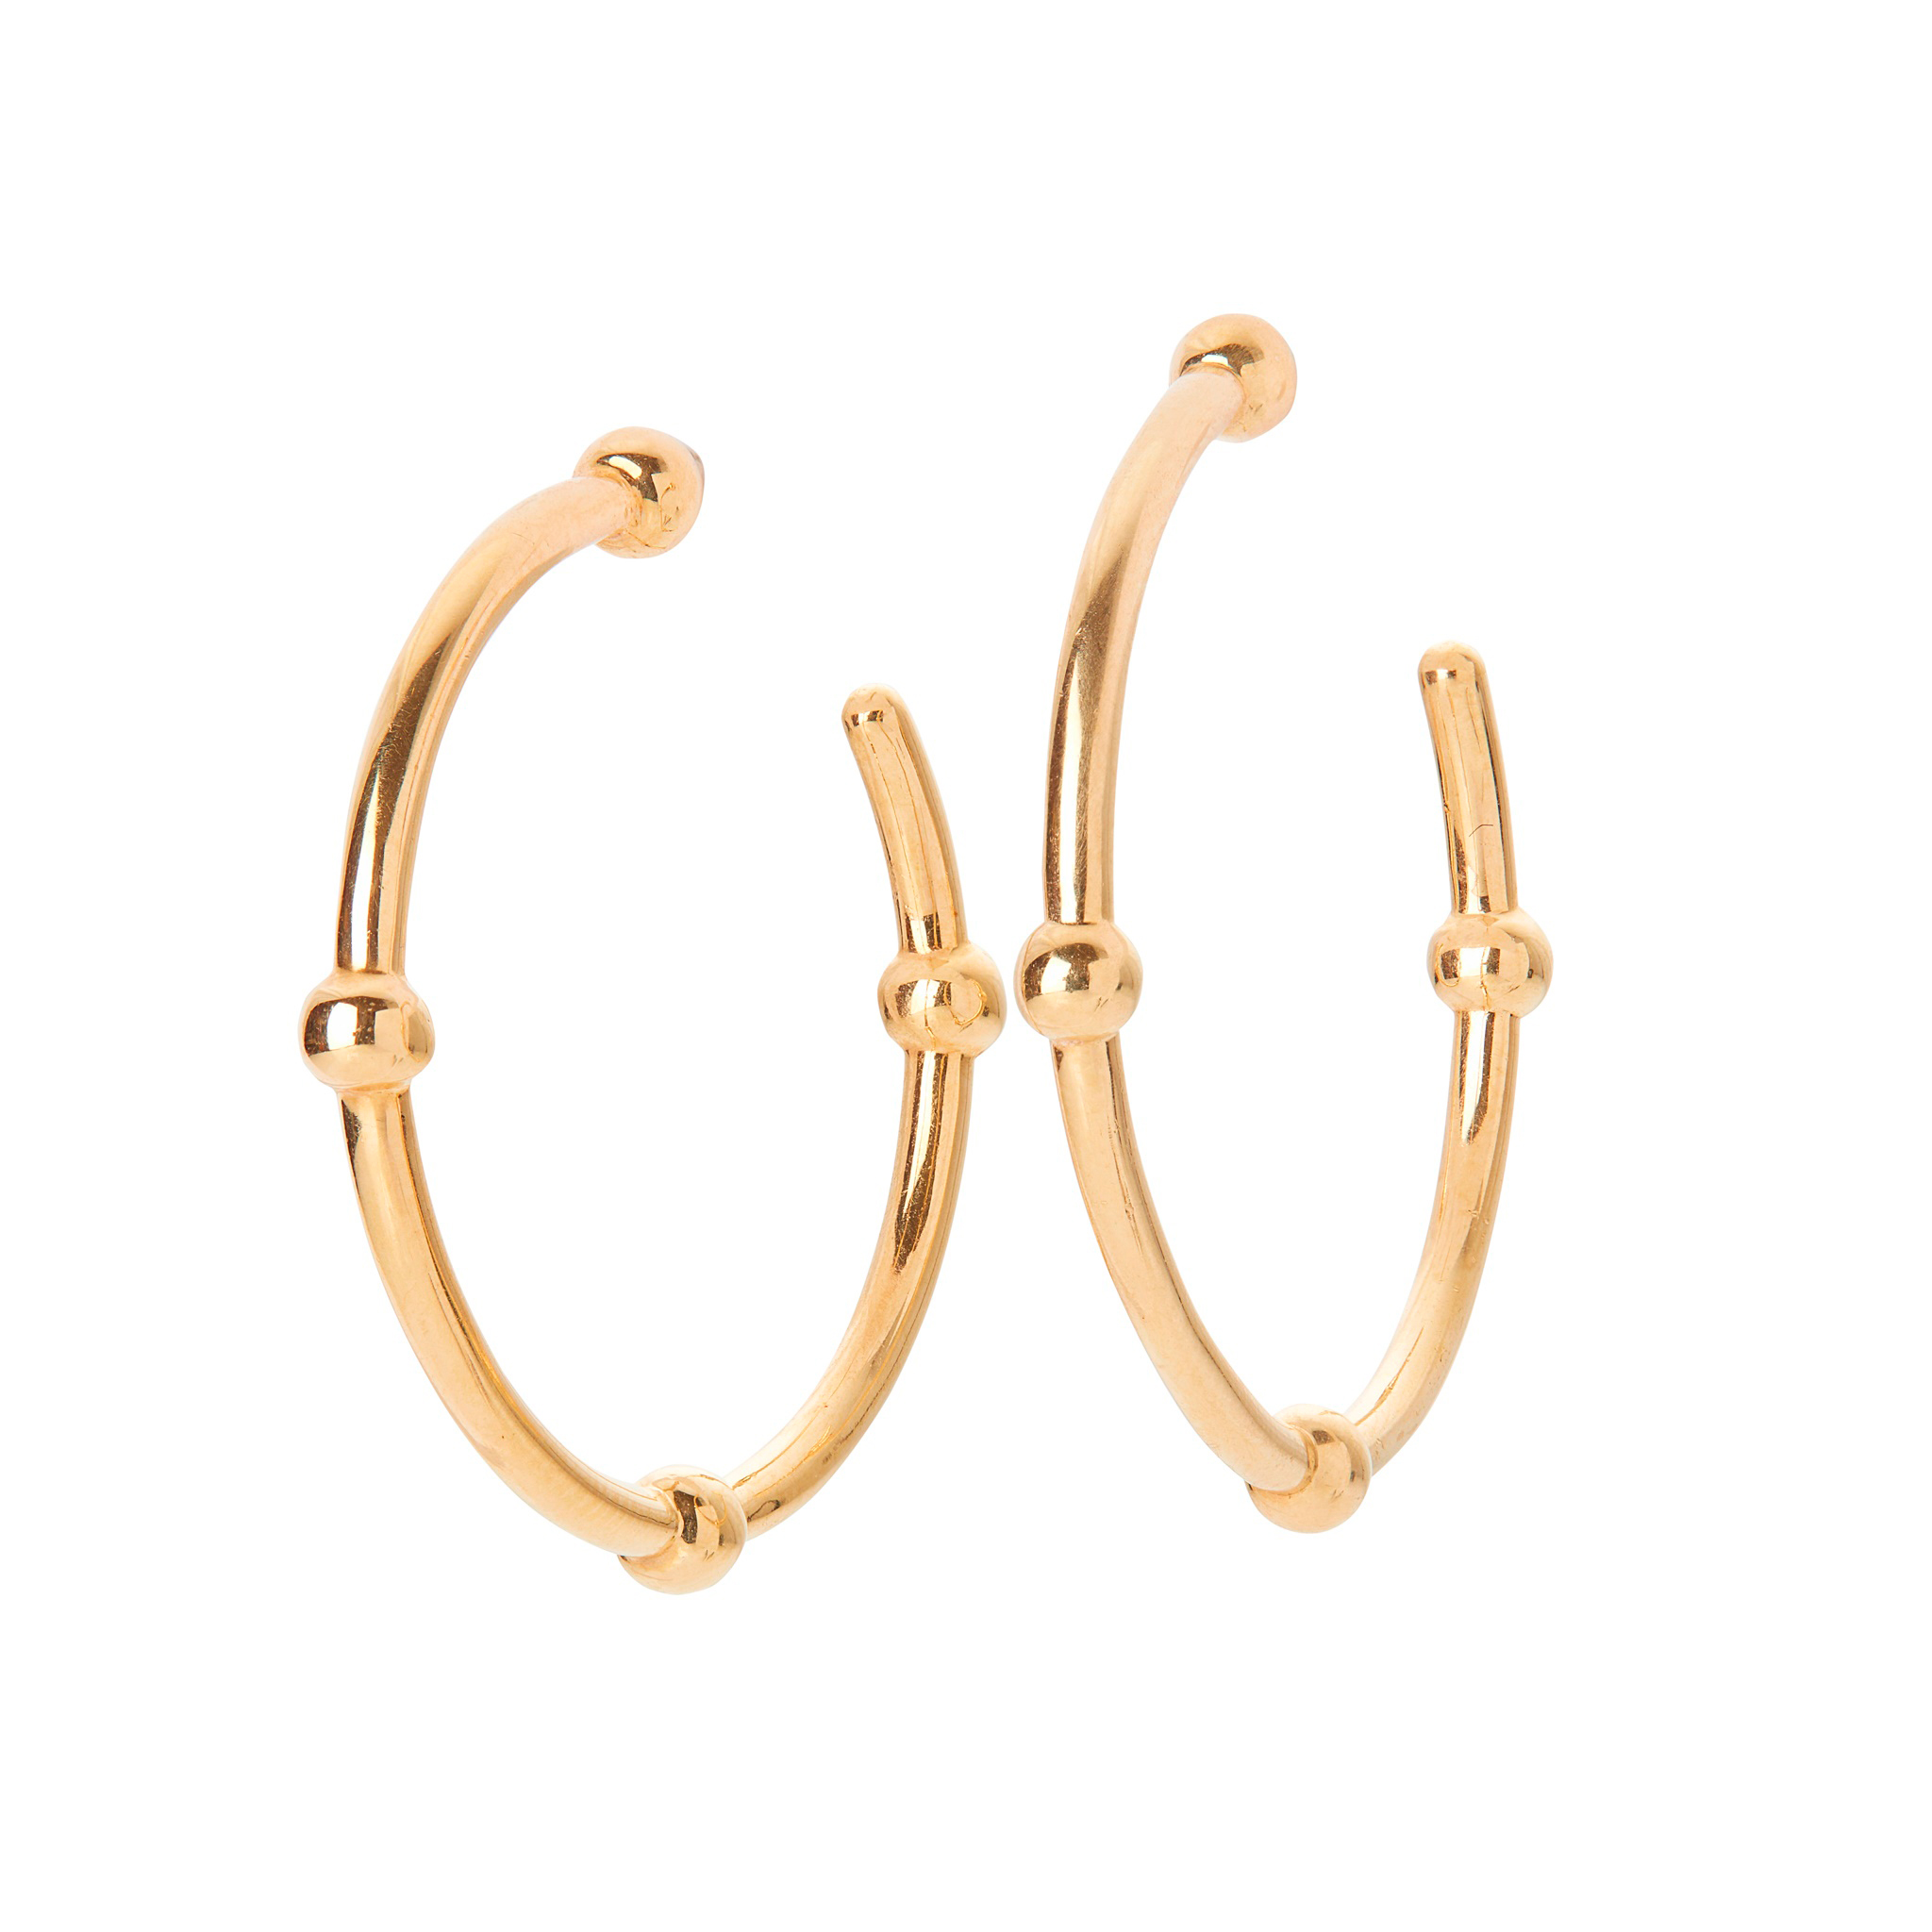 A pair of 18ct gold earrings, Tiffany & Co